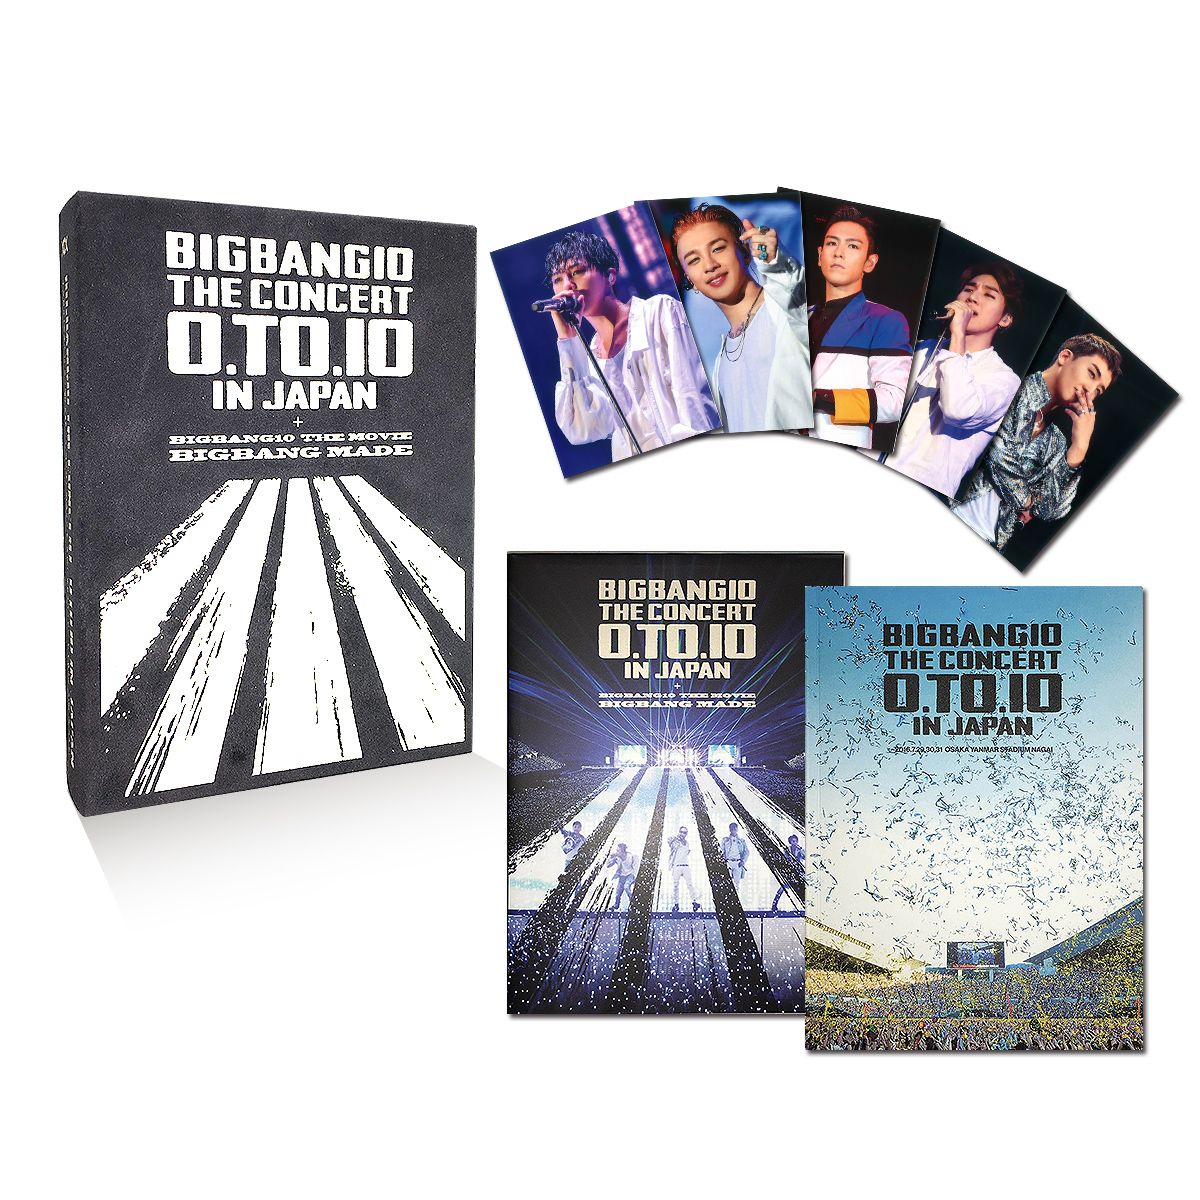 BIGBANG10 THE CONCERT : 0.TO.10 IN JAPAN + BIGBANG10 THE MOVIE BIGBANG MADE +LIVE CD +PHOTO BOOK+スマプラムービー&ミュージック] -DELUXE EDITION-